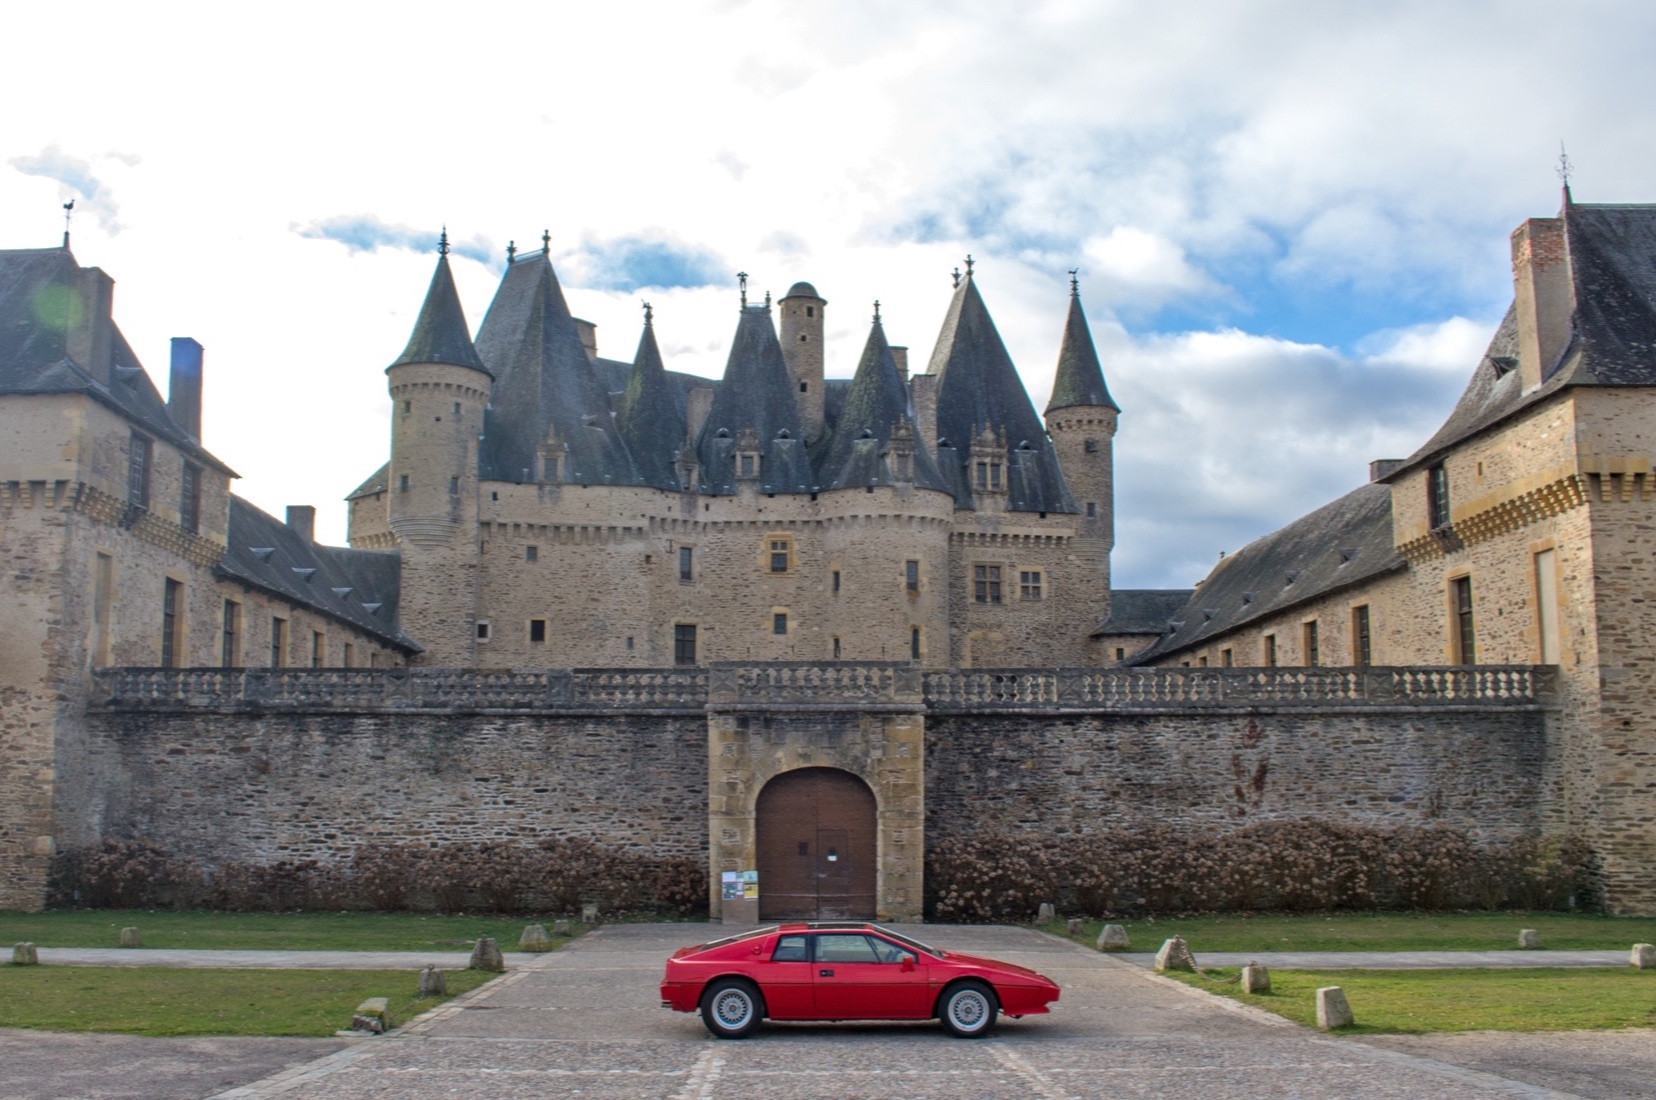 Château de jumilhac - Built between the XIII and XVII centuries, the château is still a private castle, owned by the same family since the 16th century the Marquis of Jumilhac.